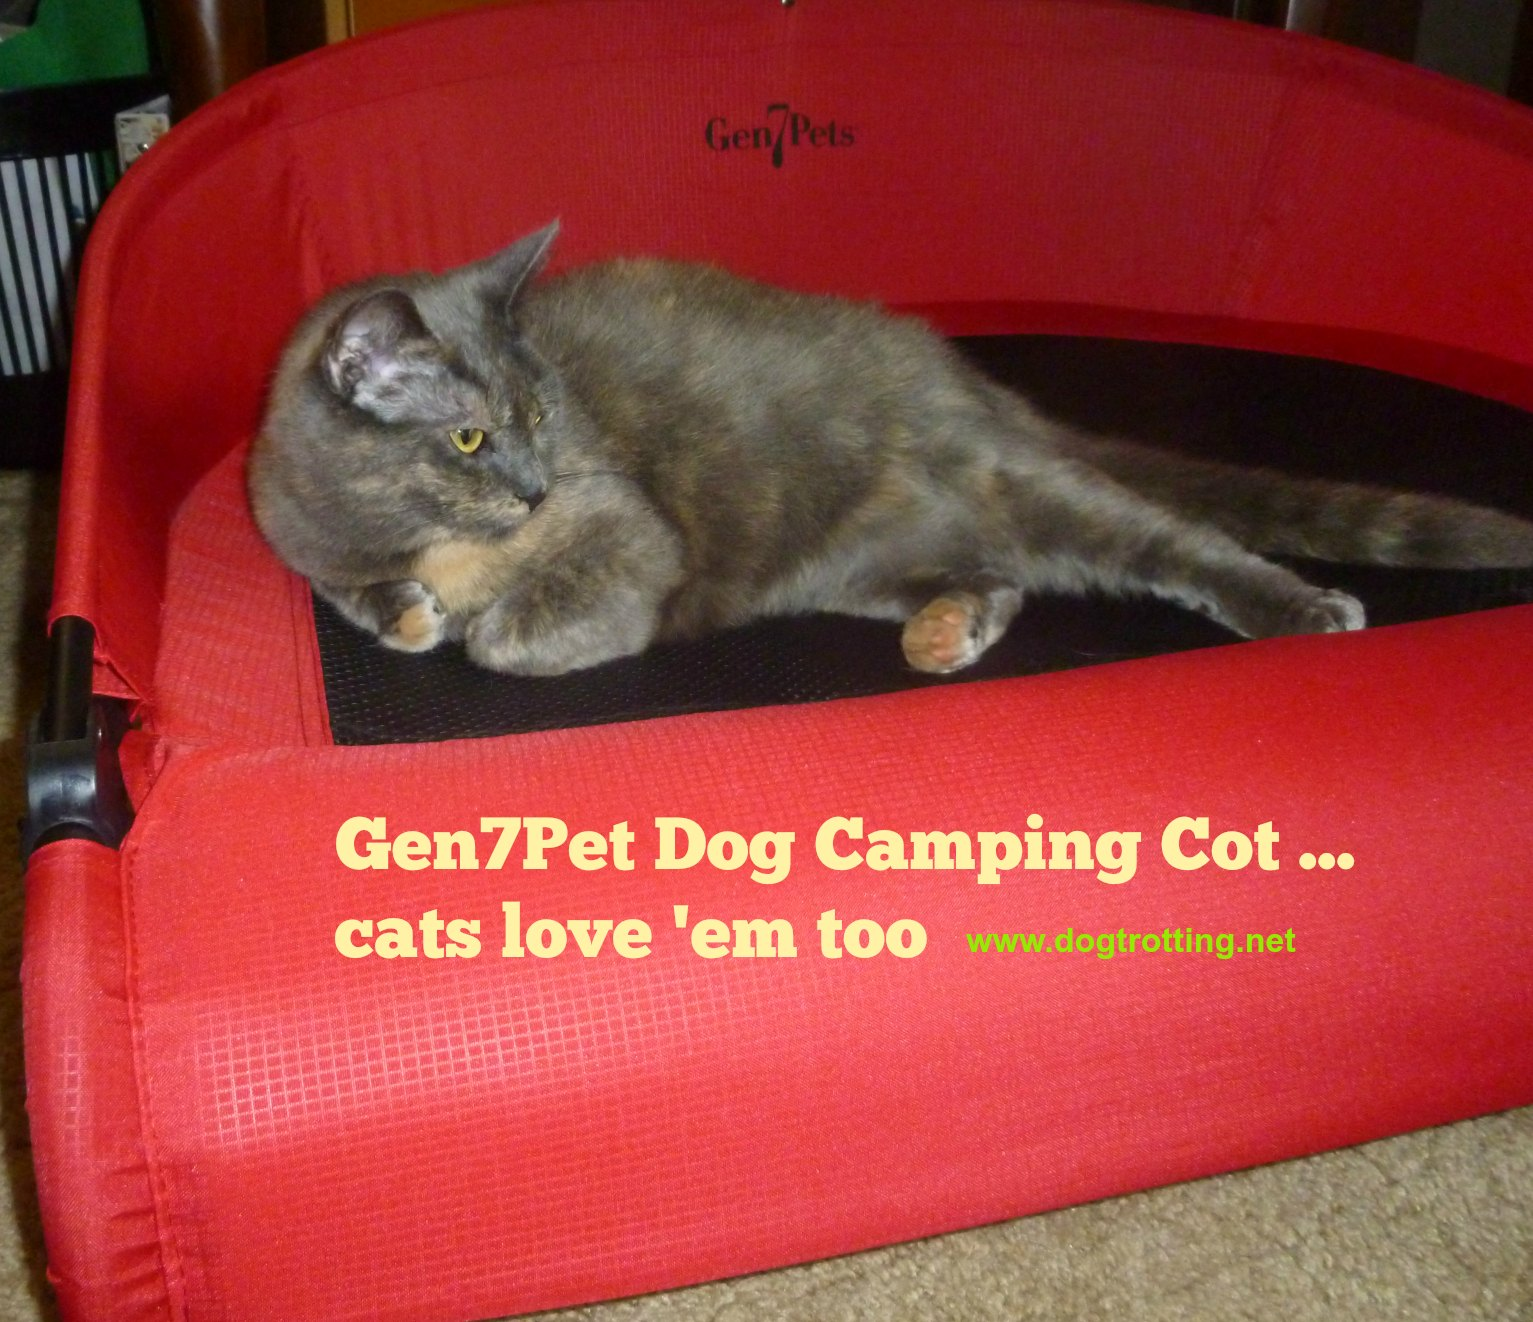 Review: Cat Claims Gen 7 Pets Cool-Air Dog Cot. Dog watches.